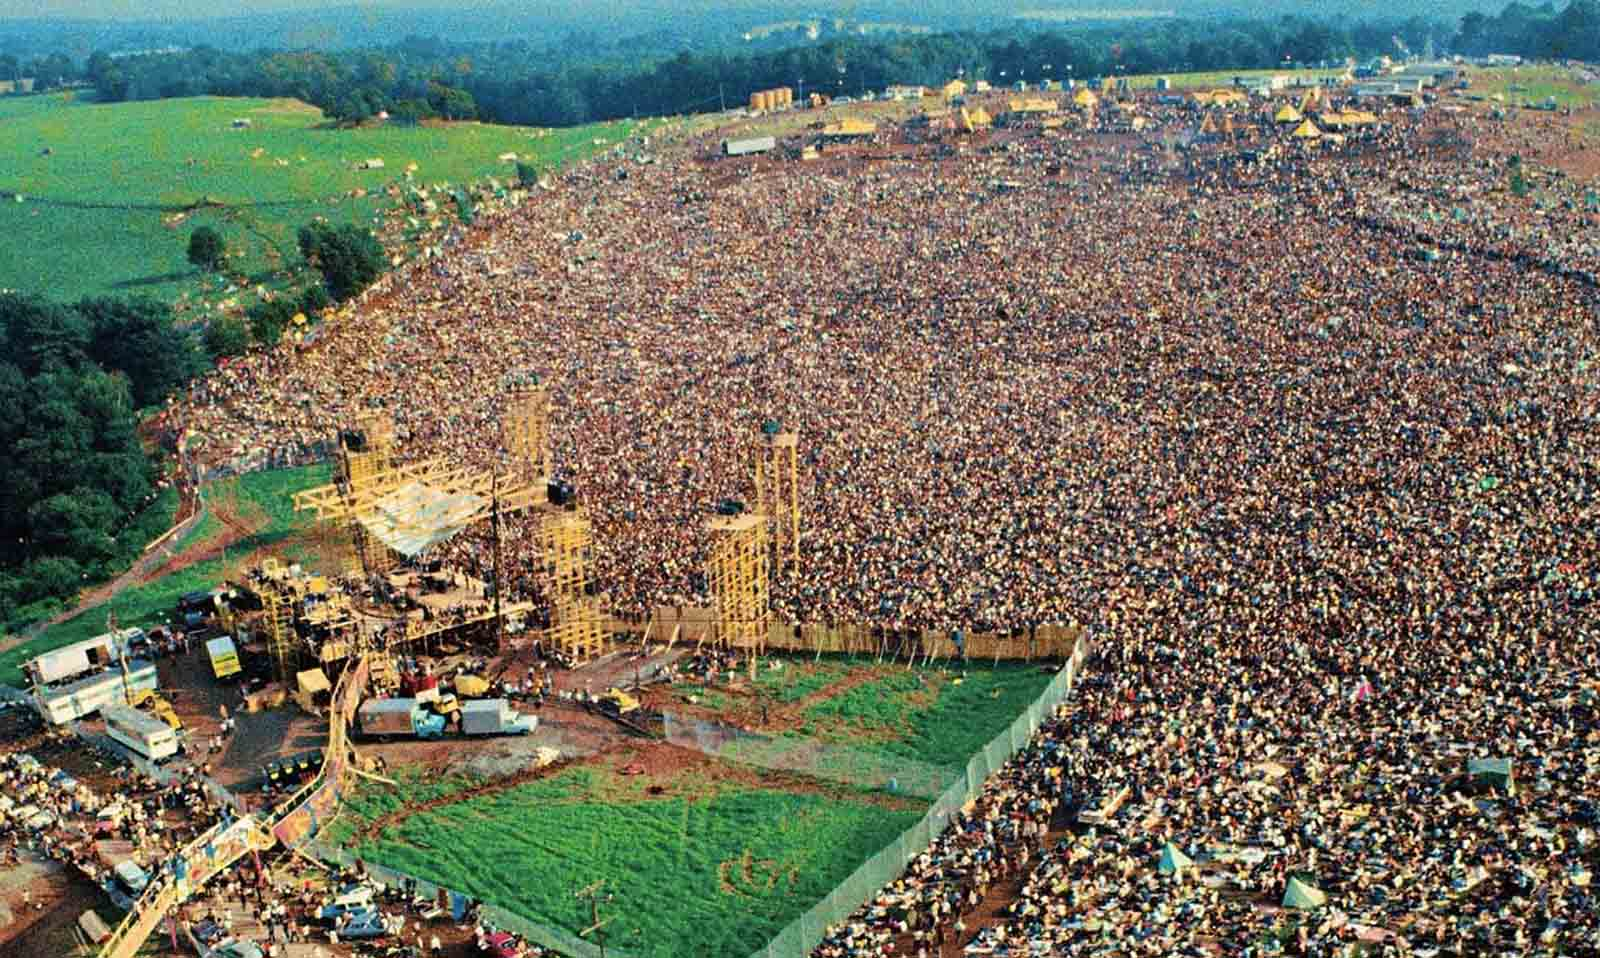 Woodstock: 3 days of peace, music...and love